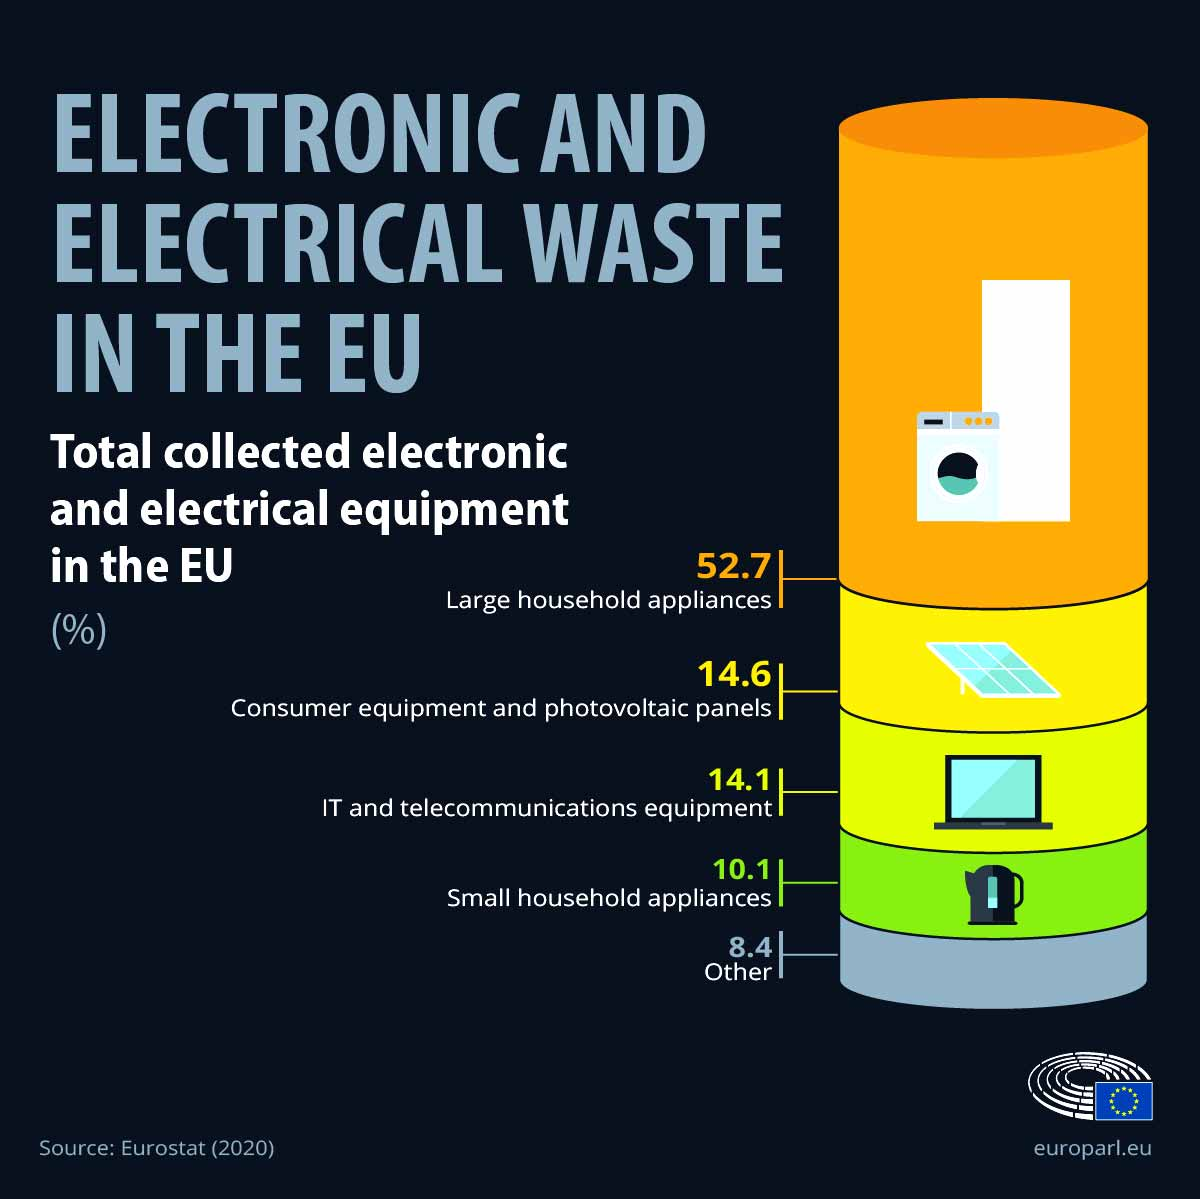 e-waste in the EU